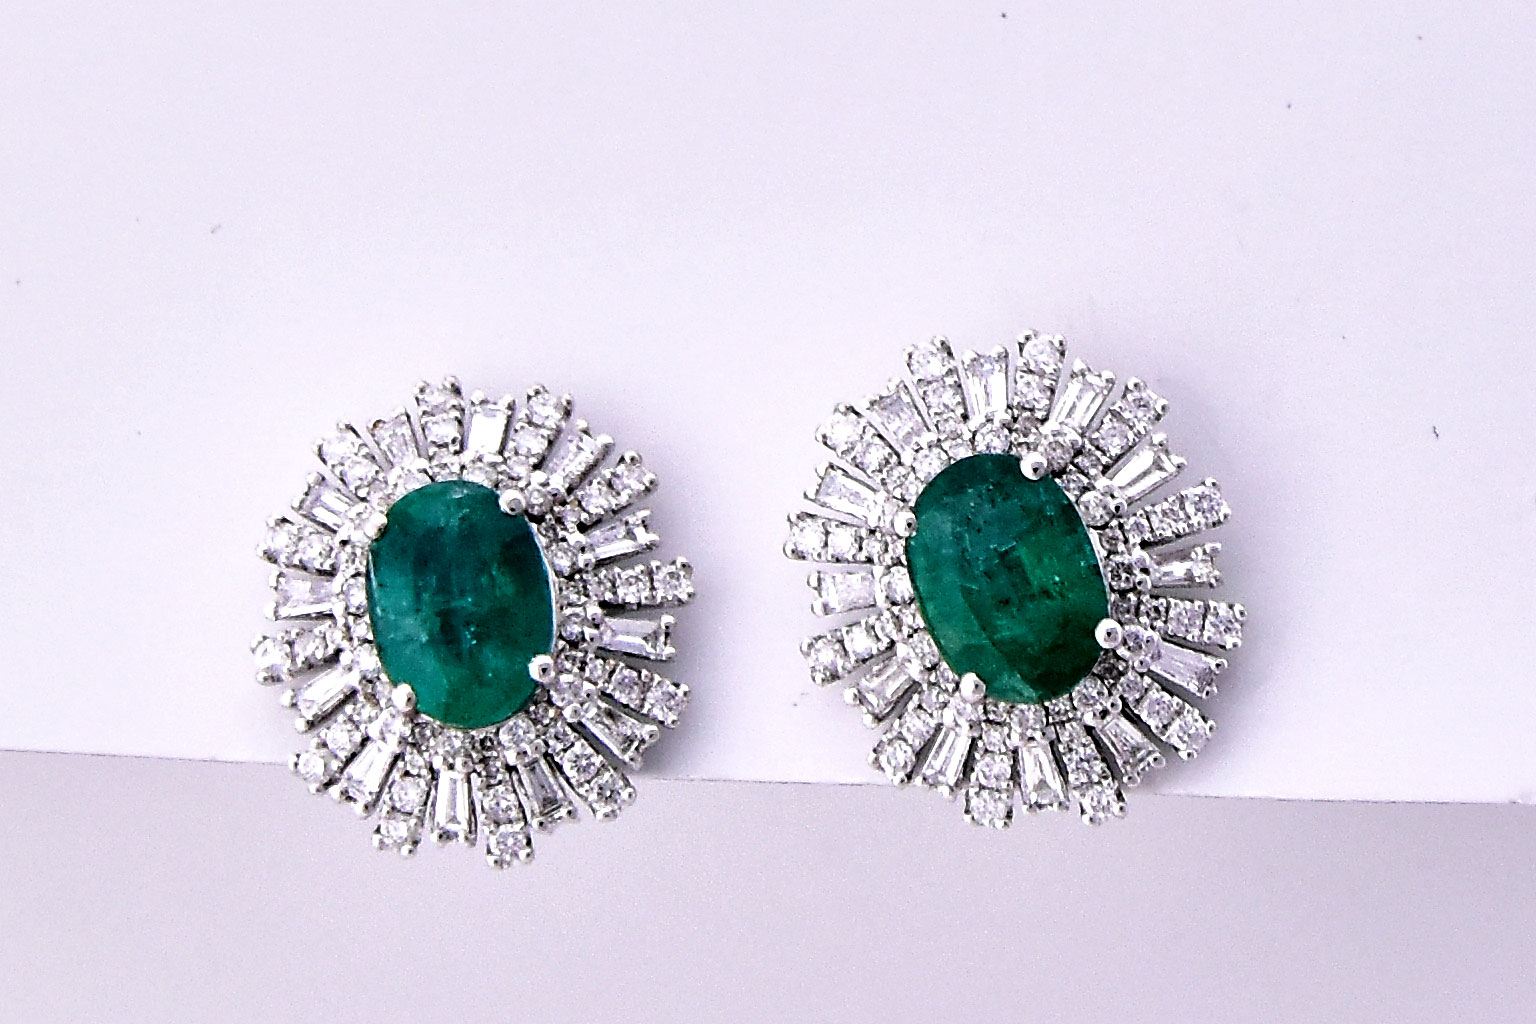 Over 2 Carats Emerald & Diamond Earrings